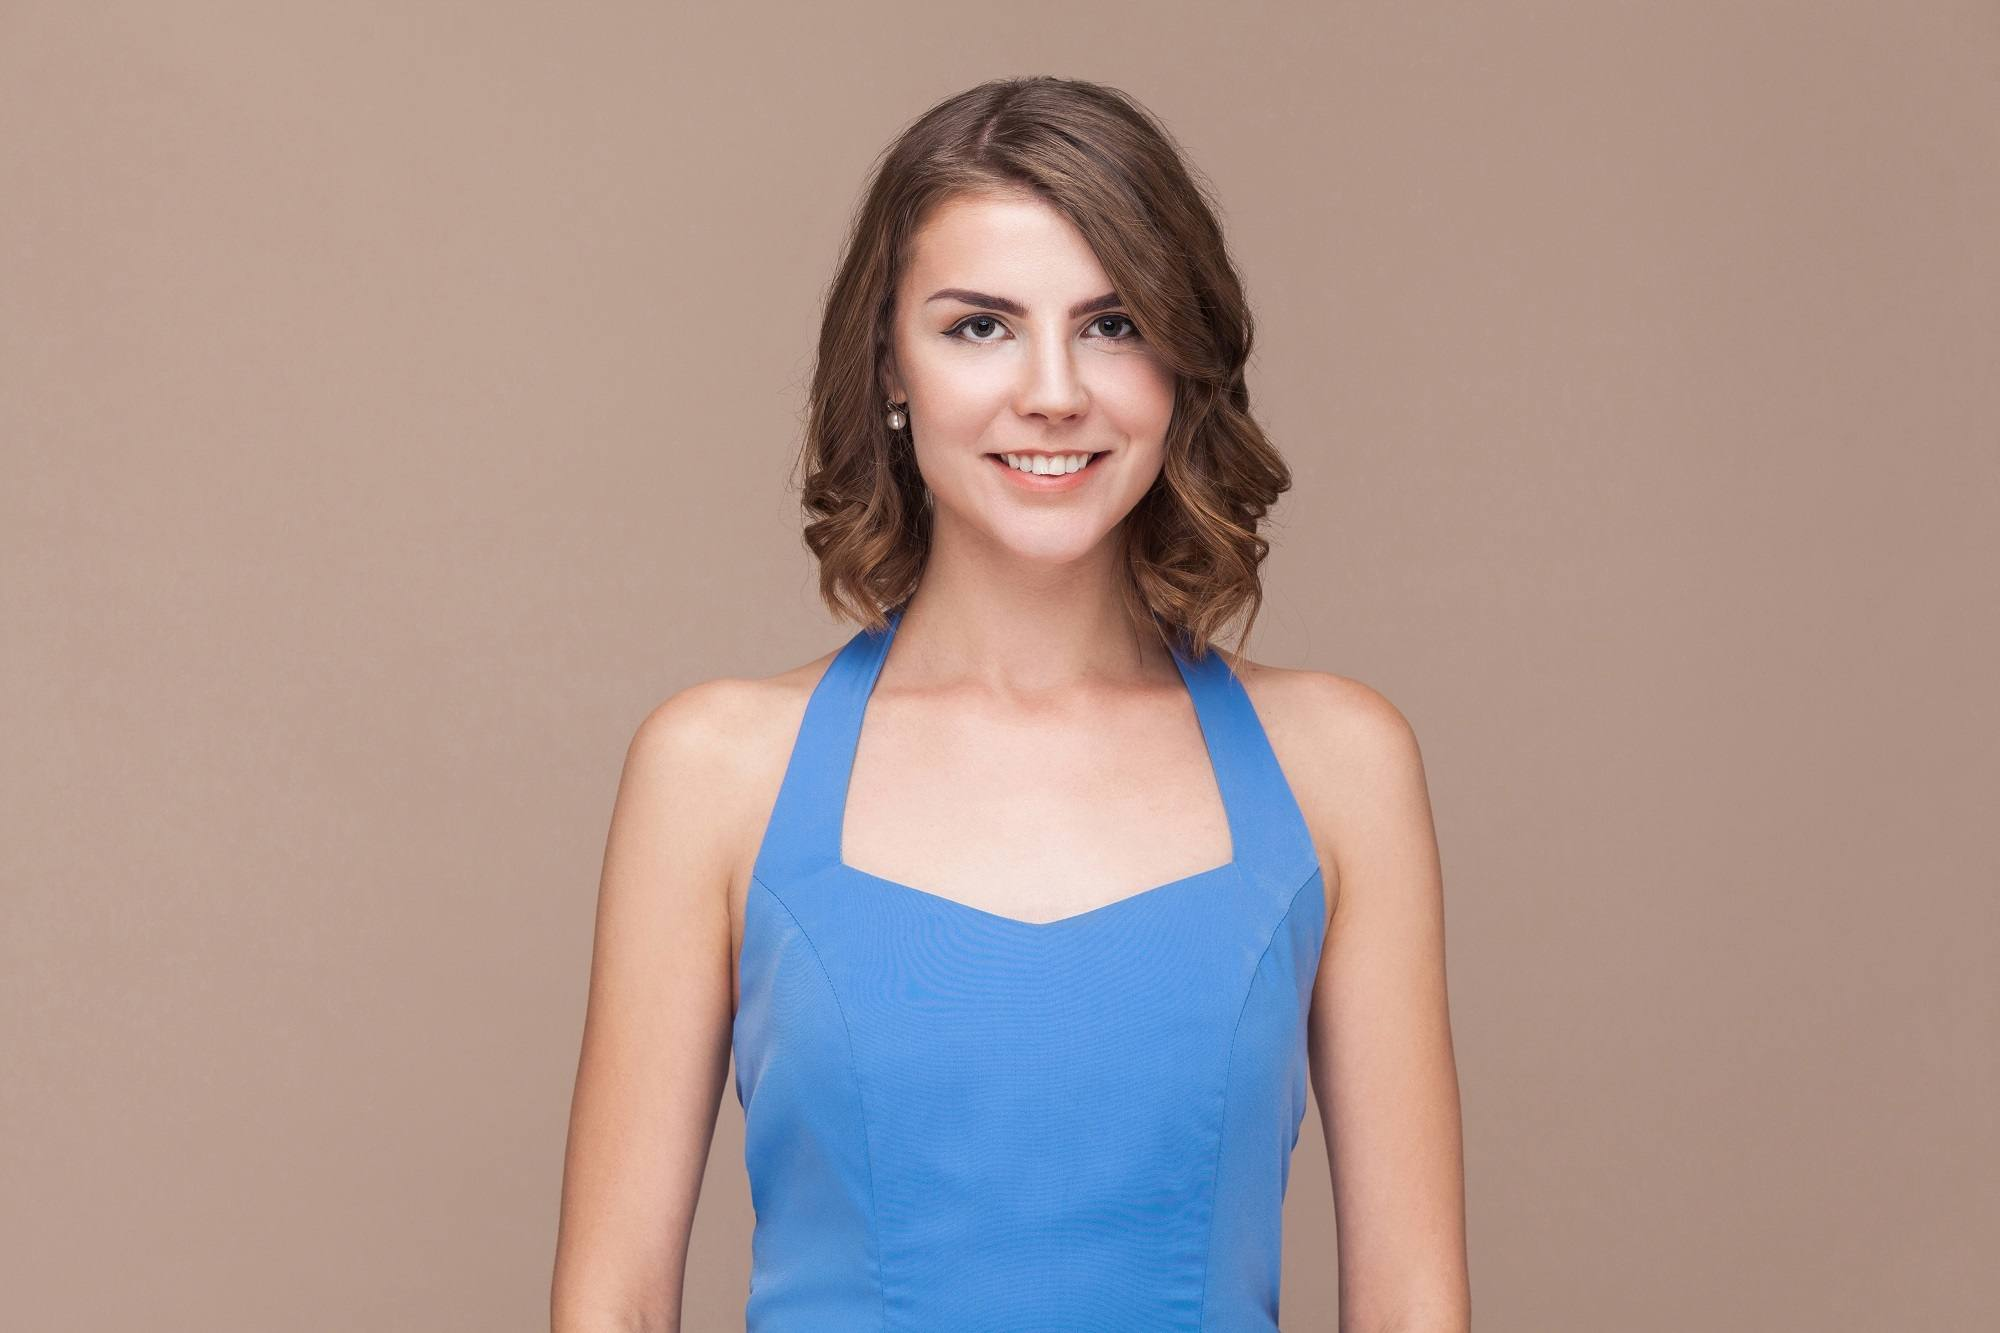 Short wavy hair: Woman with beach waves and short hair